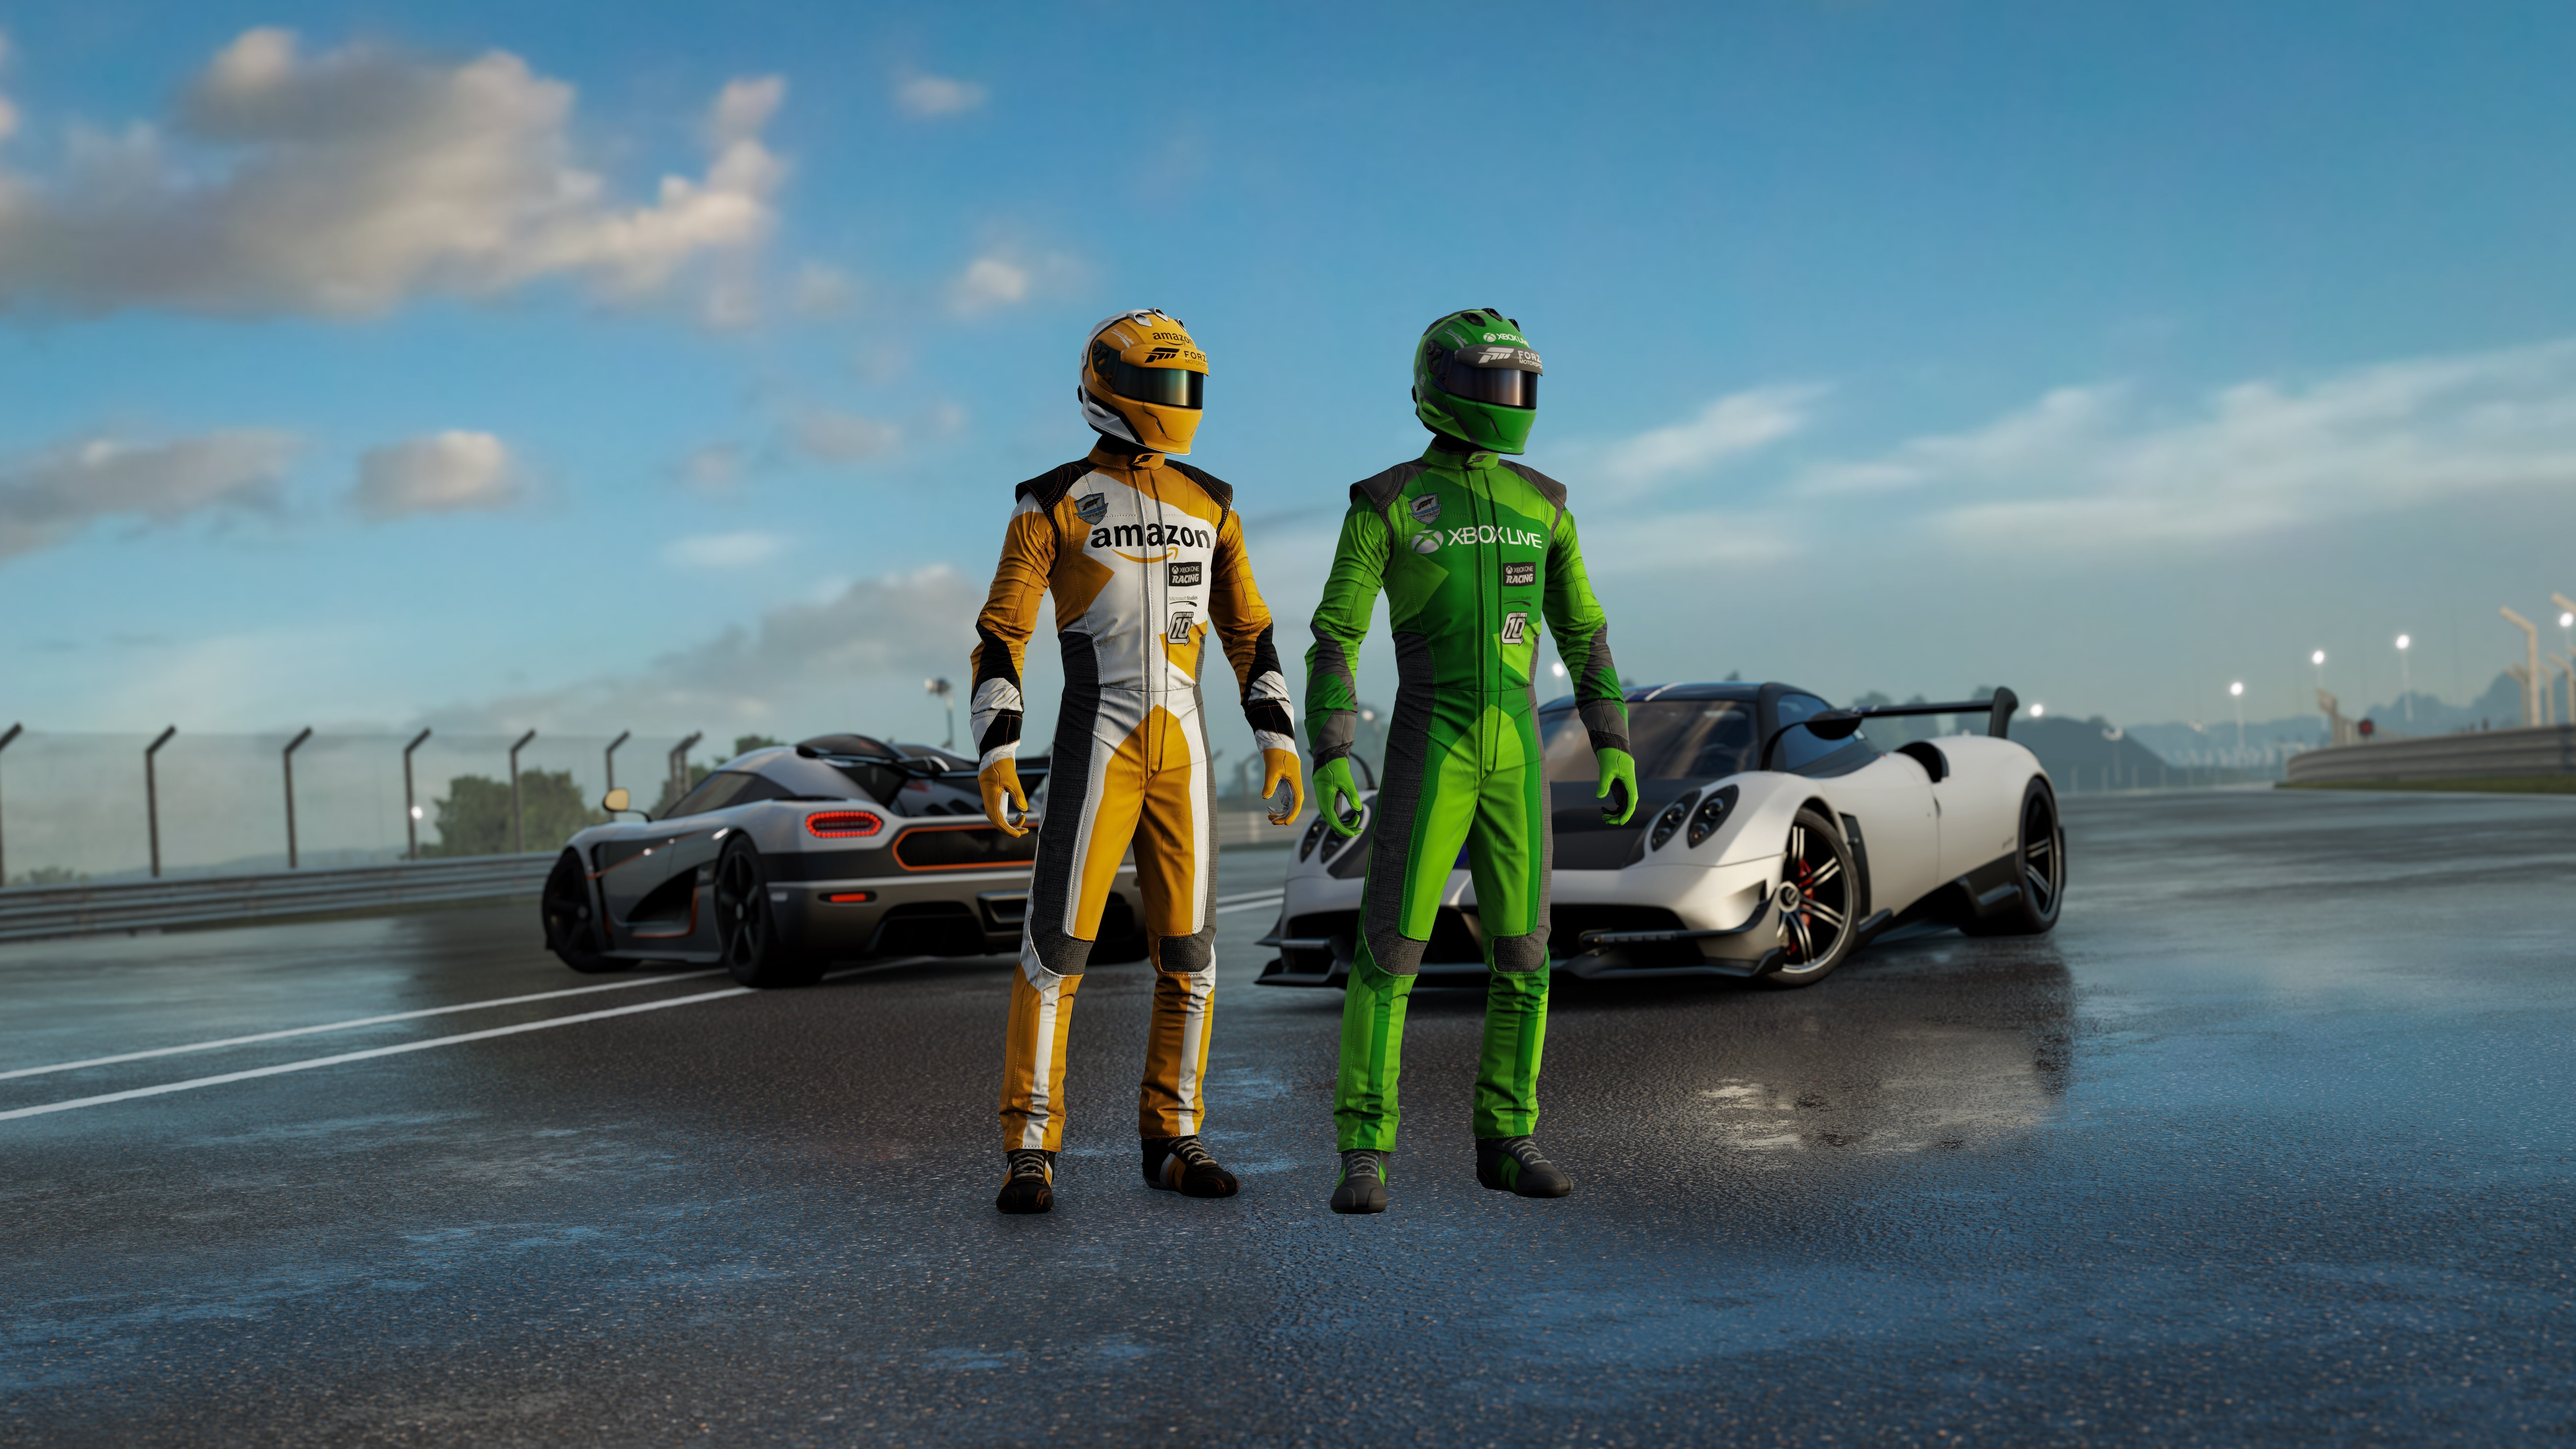 Forza motorsport 7 xbox one x hd games 4k wallpapers images backgrounds photos and pictures - Forza logo wallpaper ...